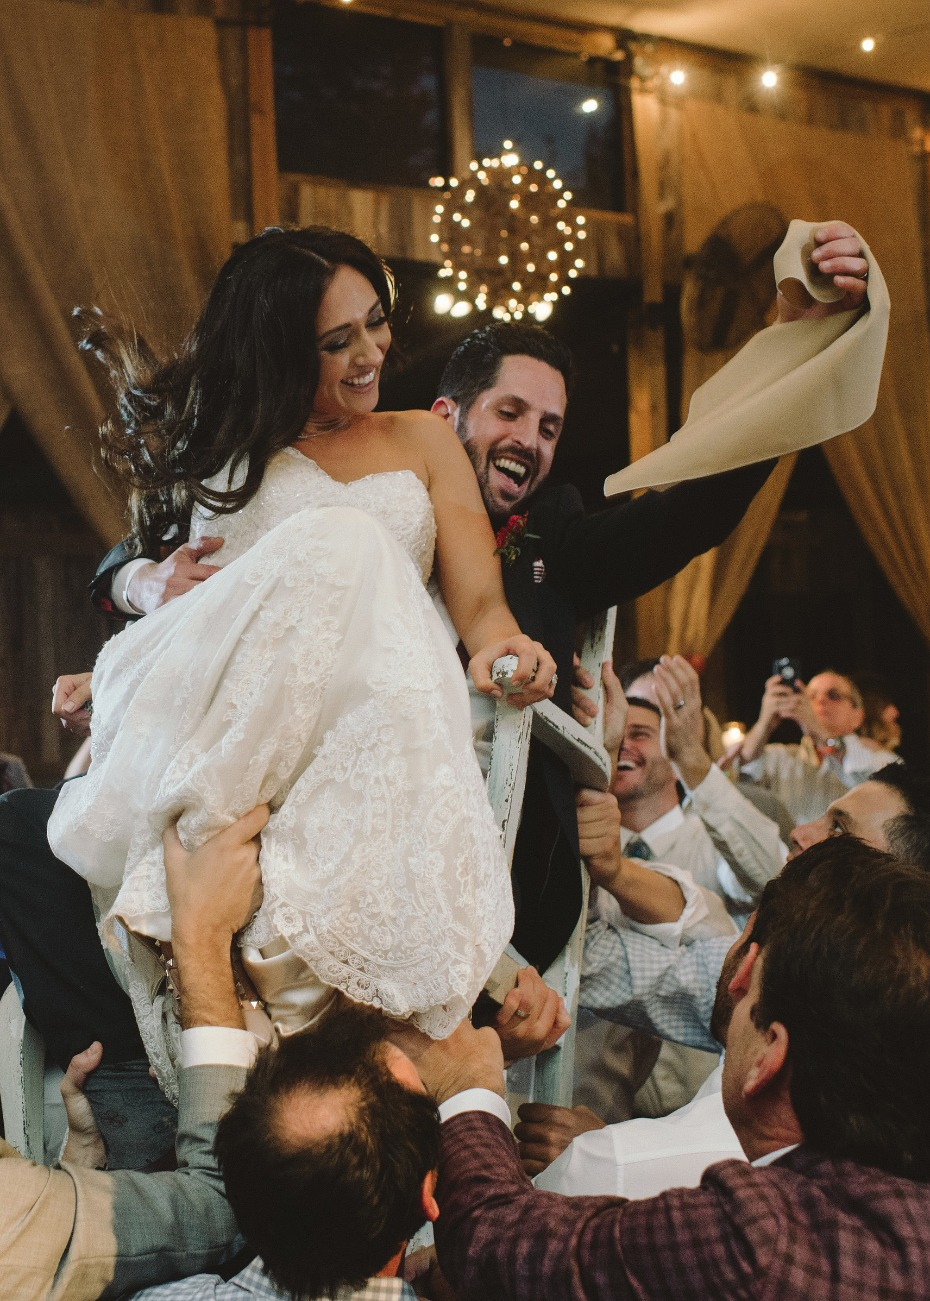 Sharing a chair for the Hora